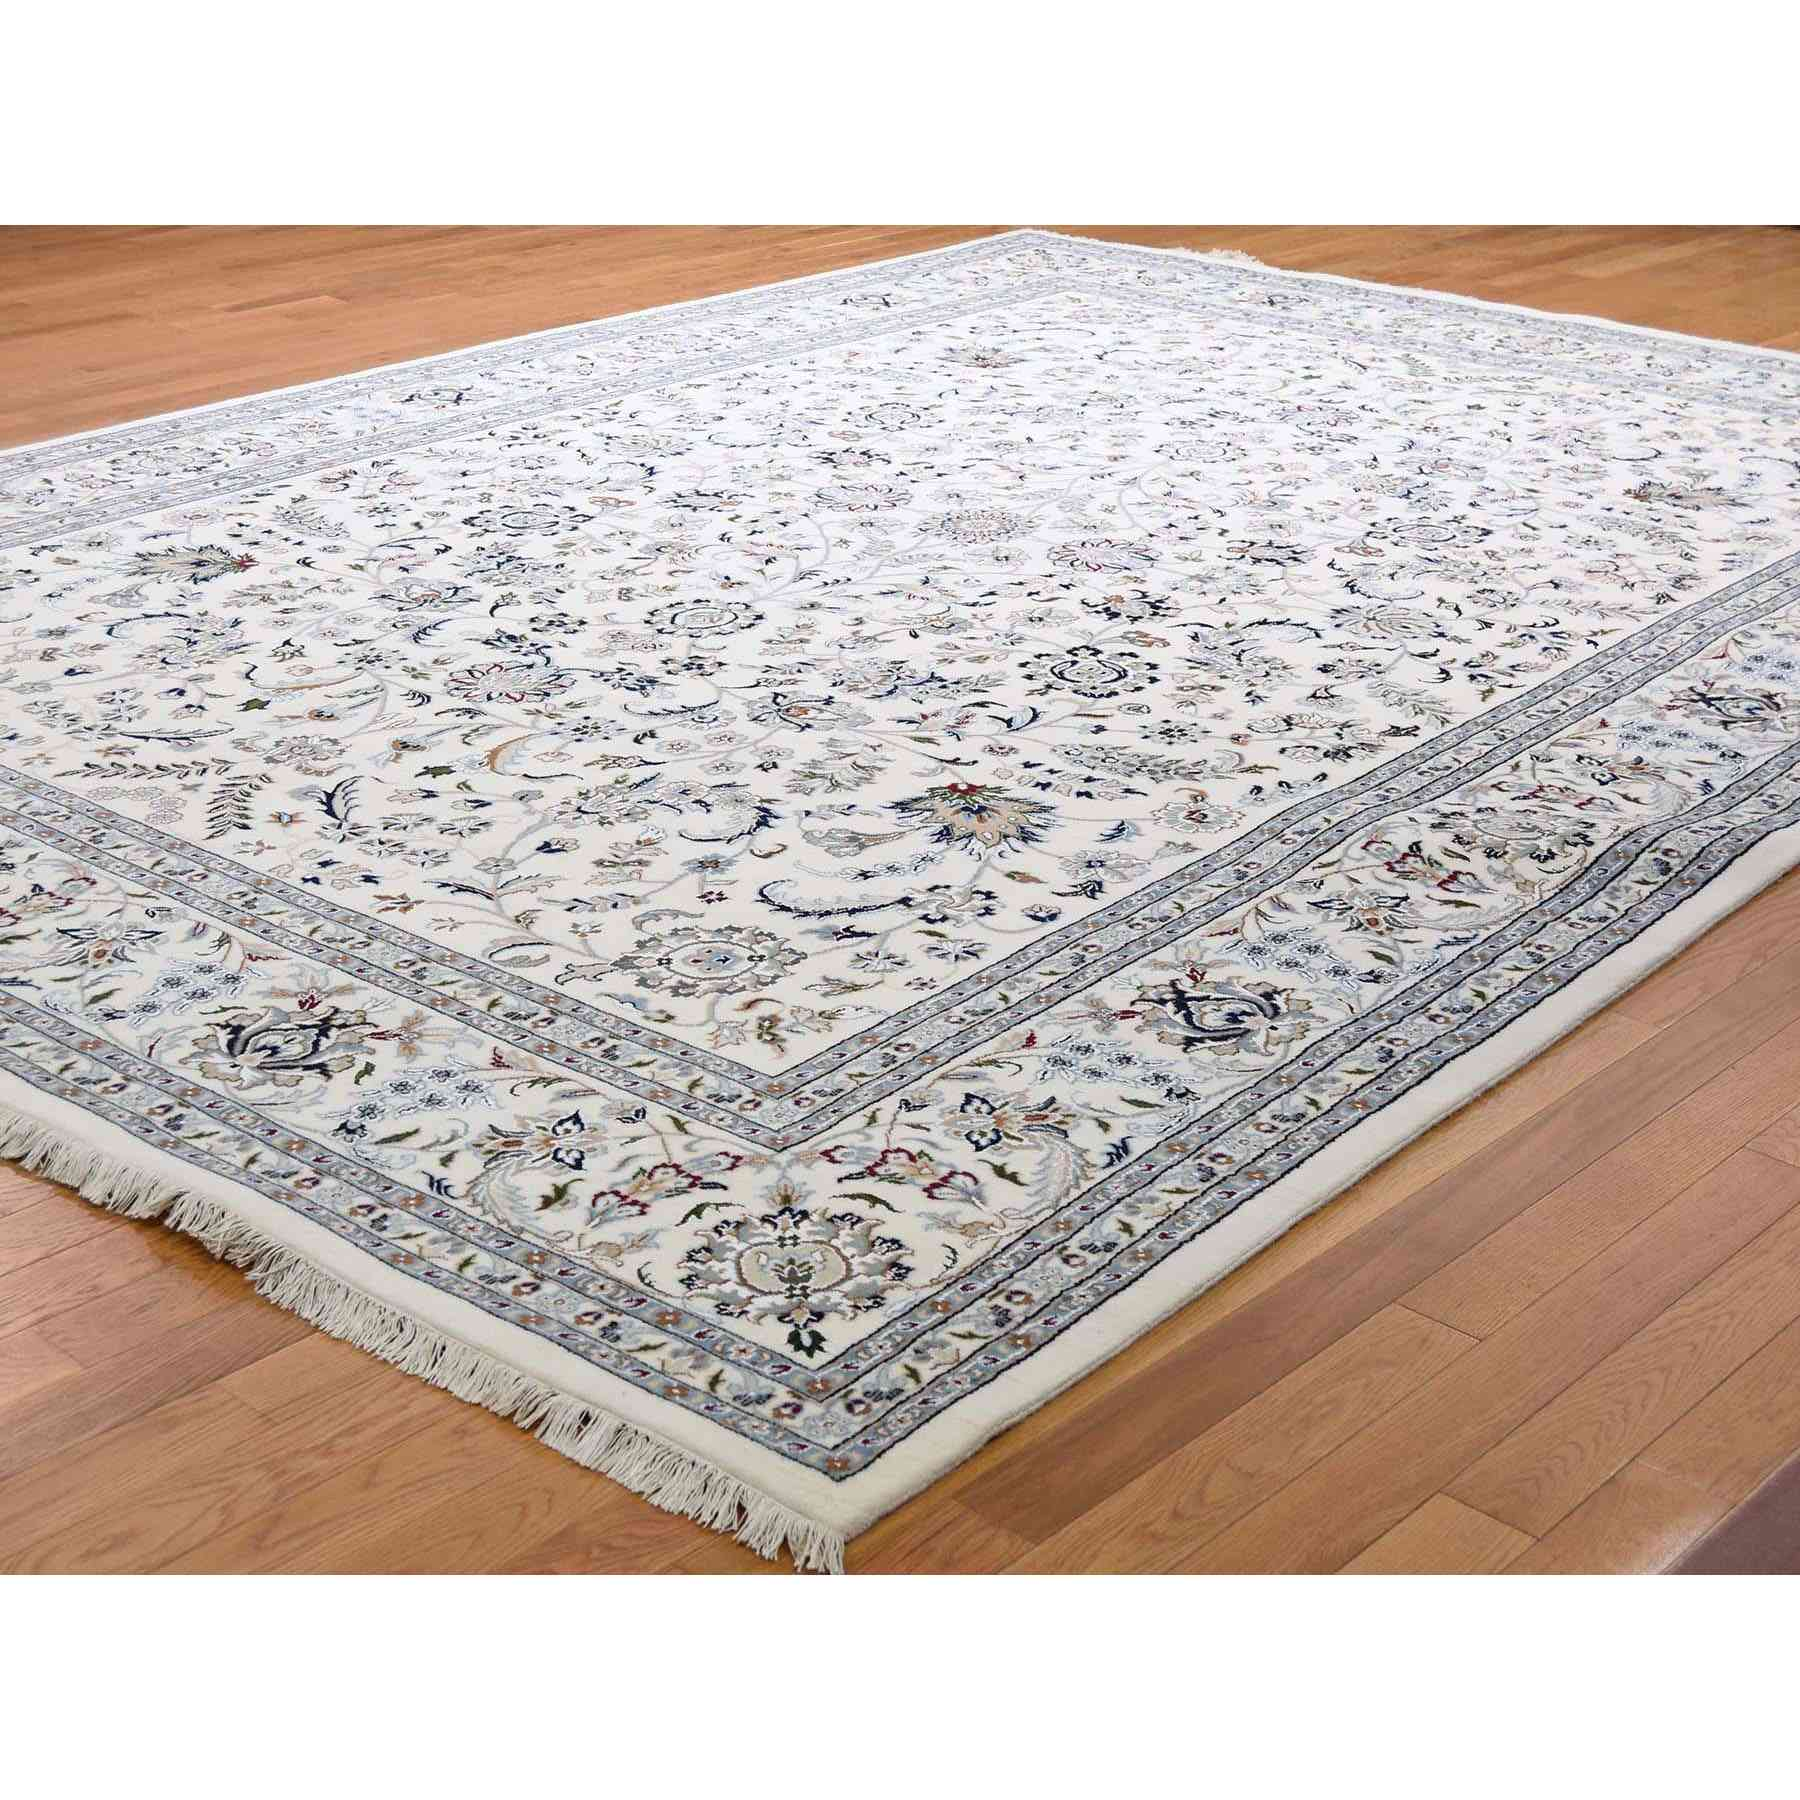 Fine-Oriental-Hand-Knotted-Rug-244005